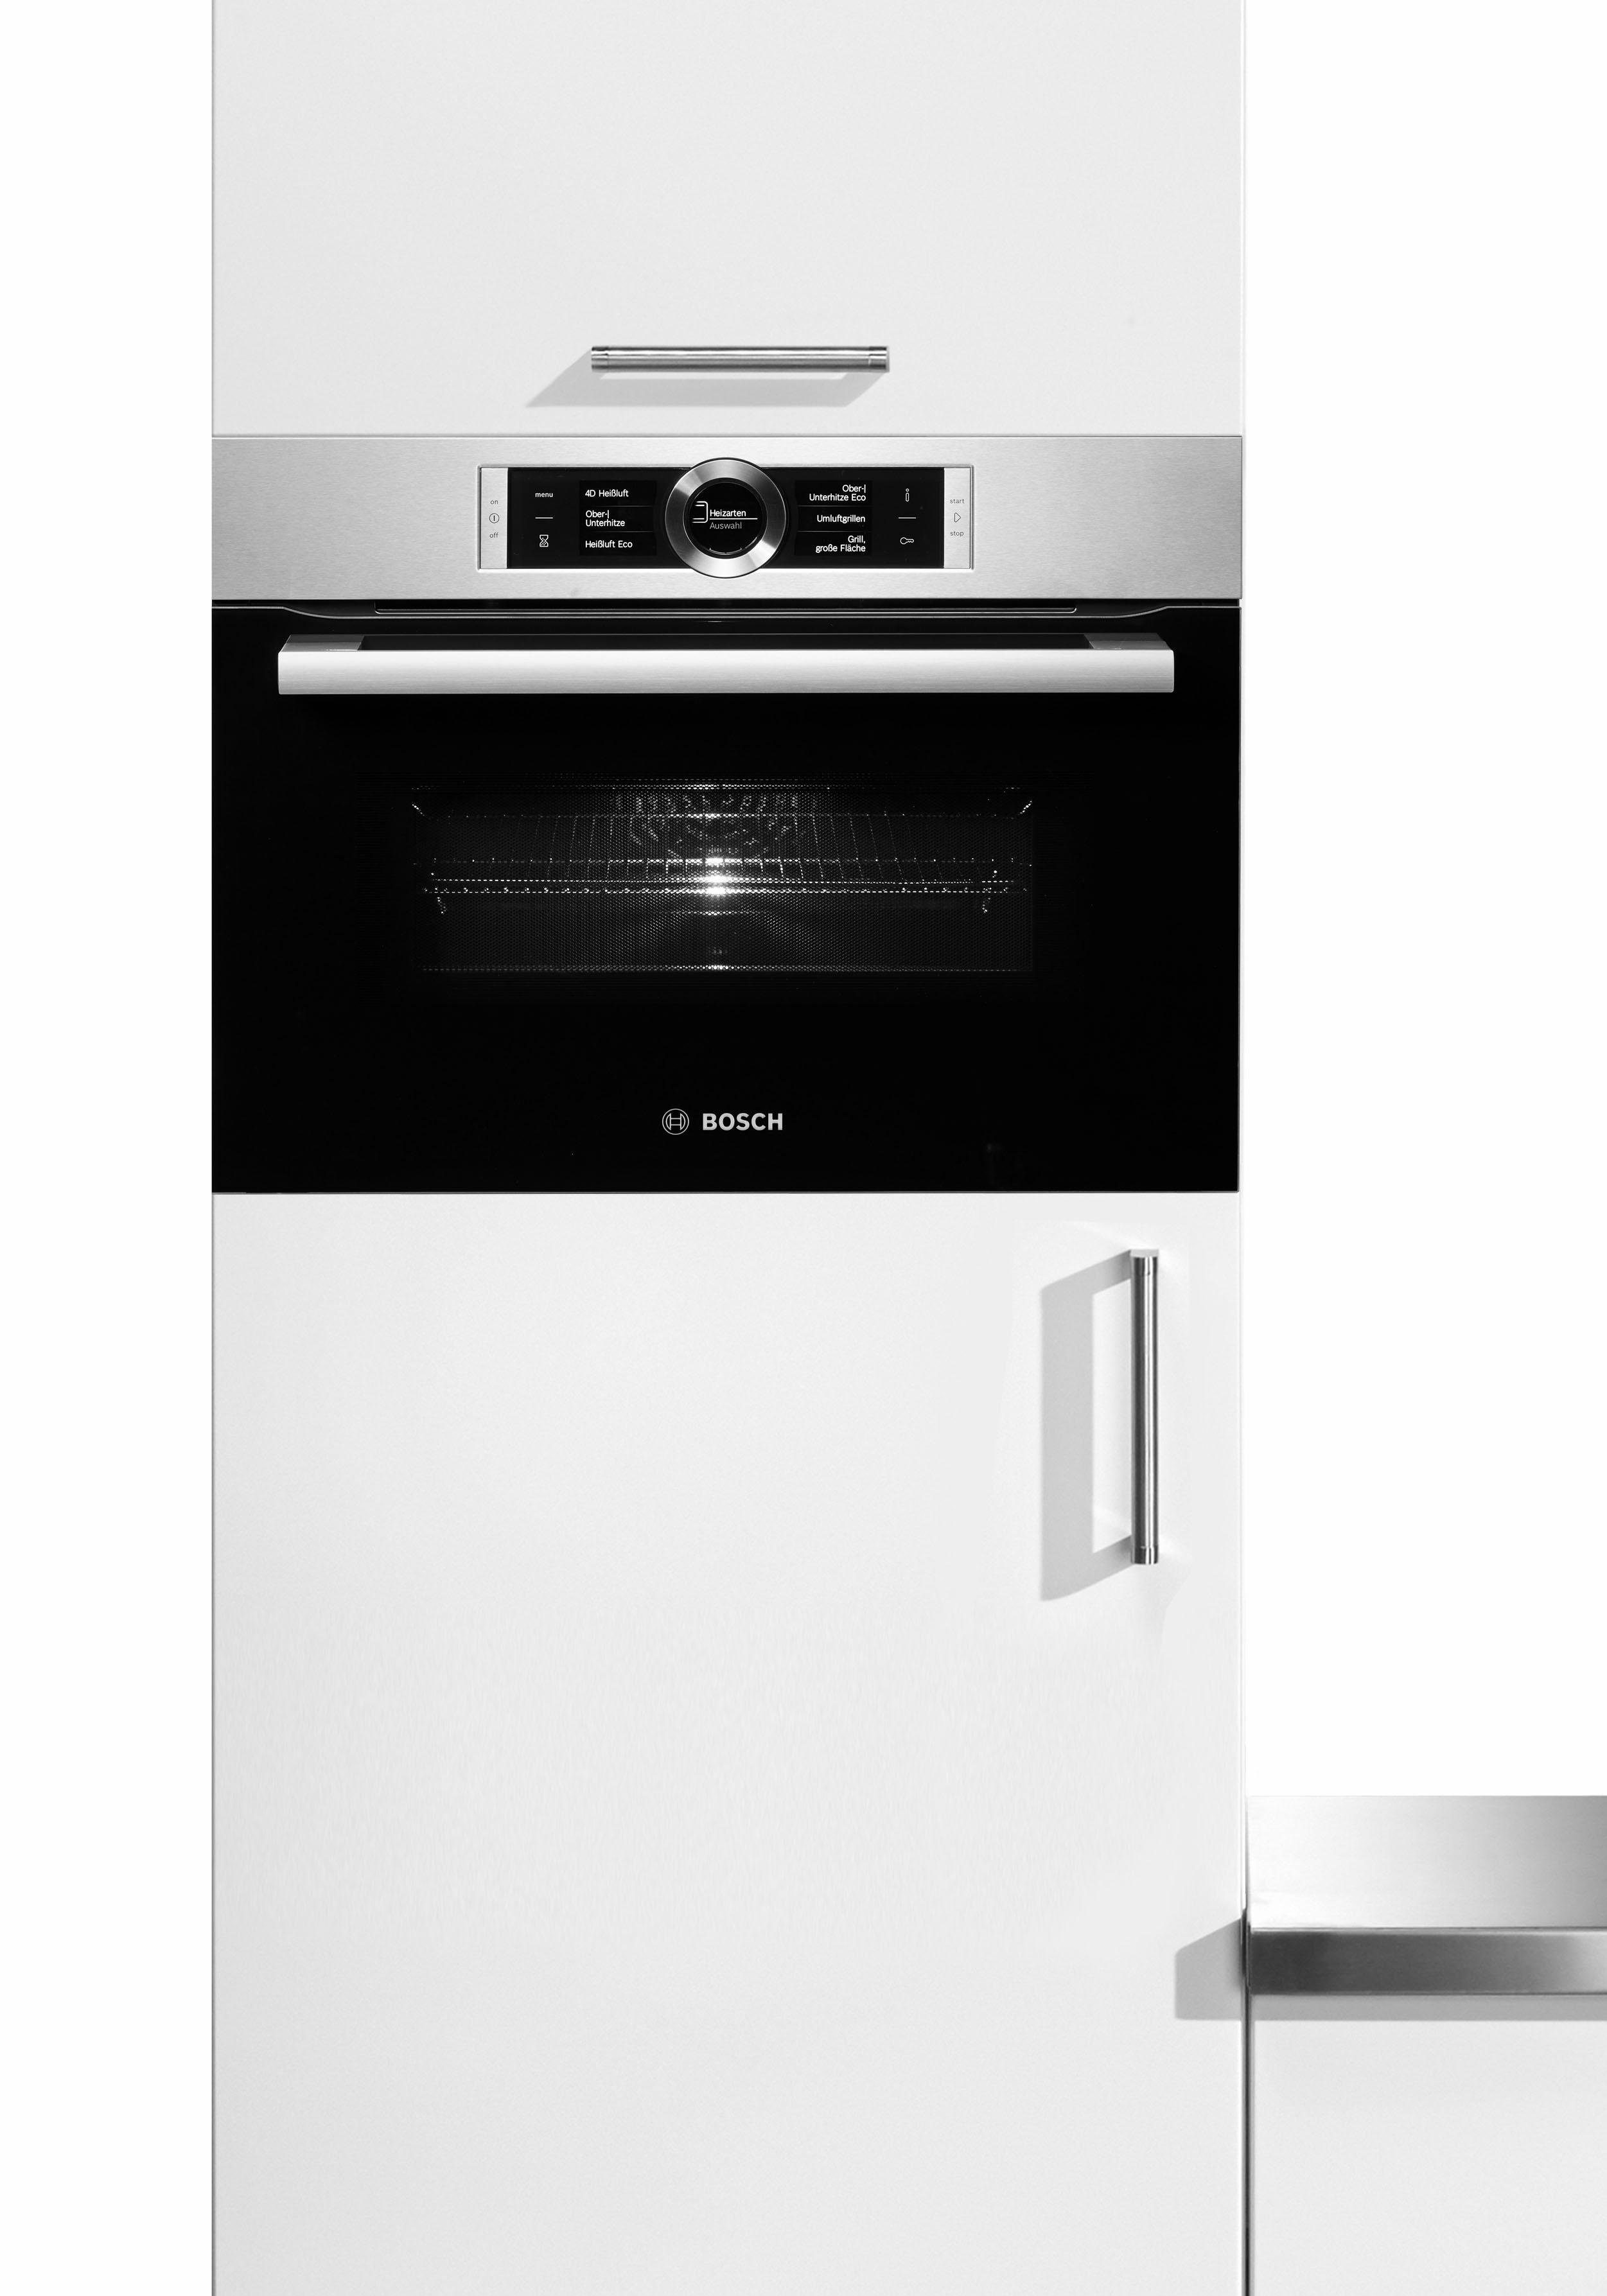 BOSCH Backofen mit Mikrowelle CMG636BS1, ecoClean